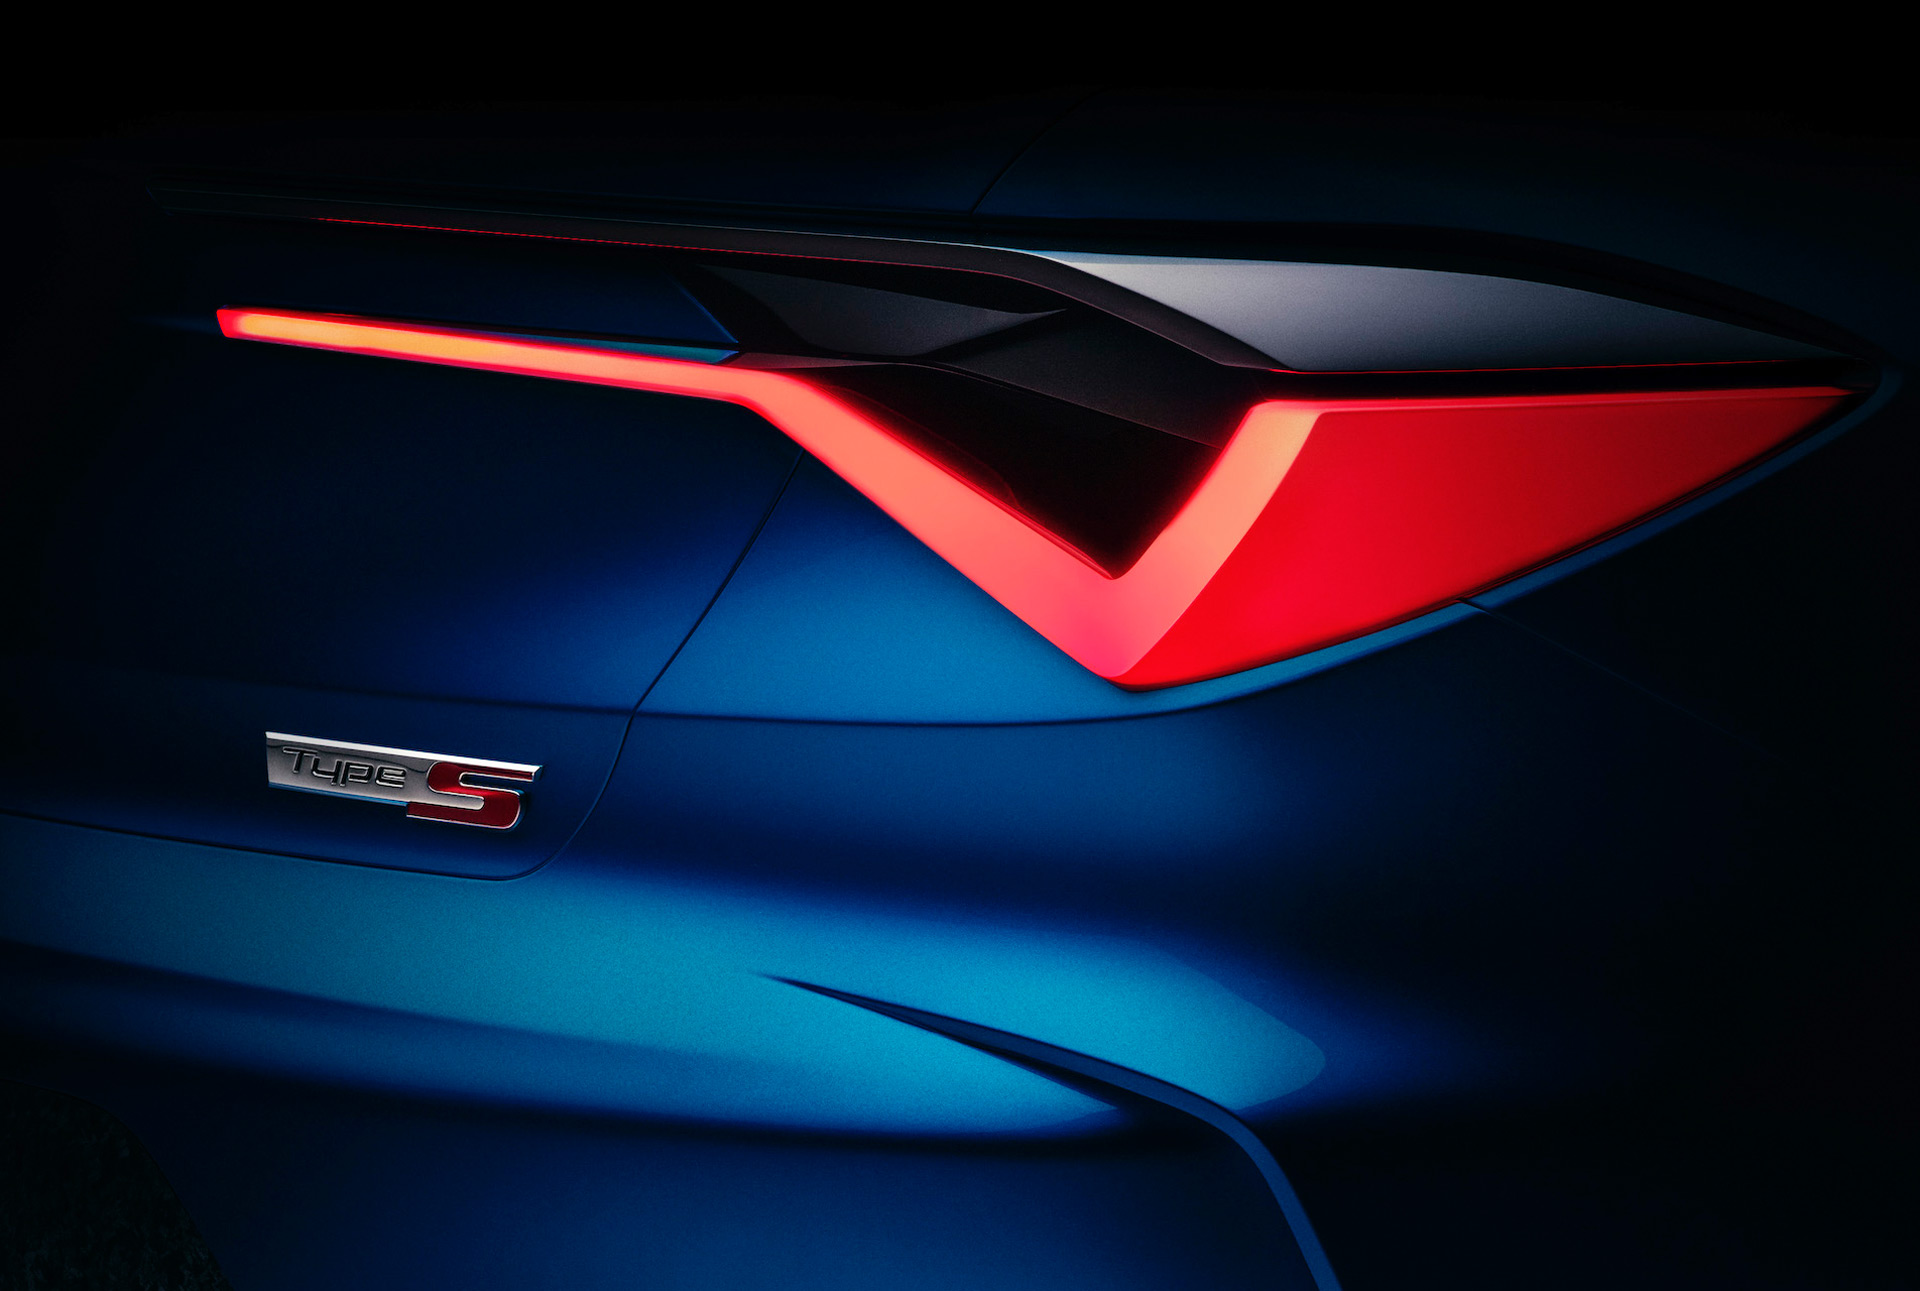 Acura Type S Concept Teased Ahead Of Monterey Car Week